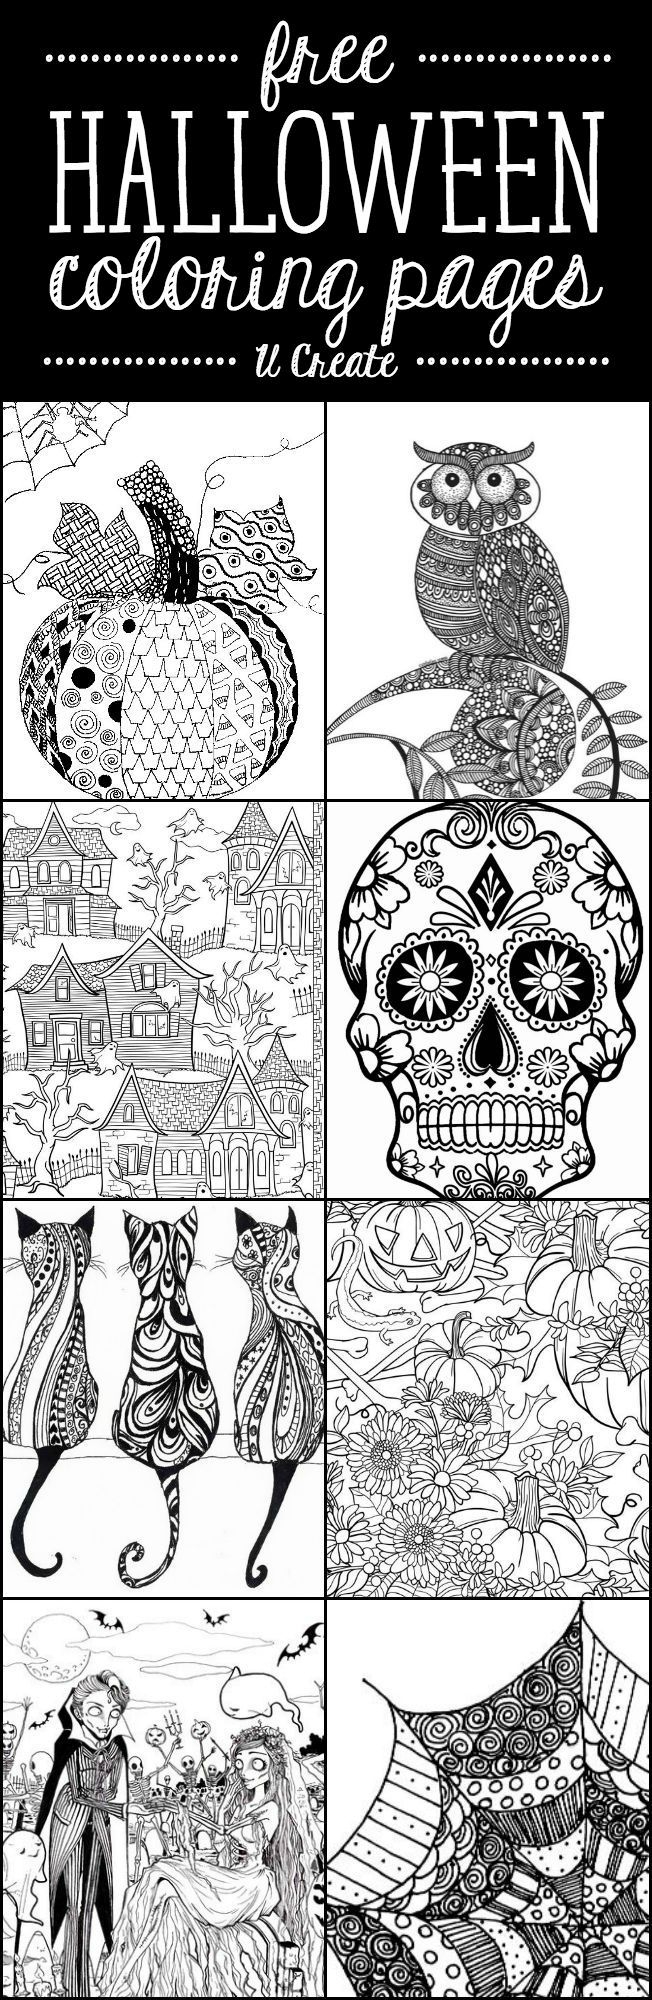 Free Halloween Adult Coloring Pages (U Create)